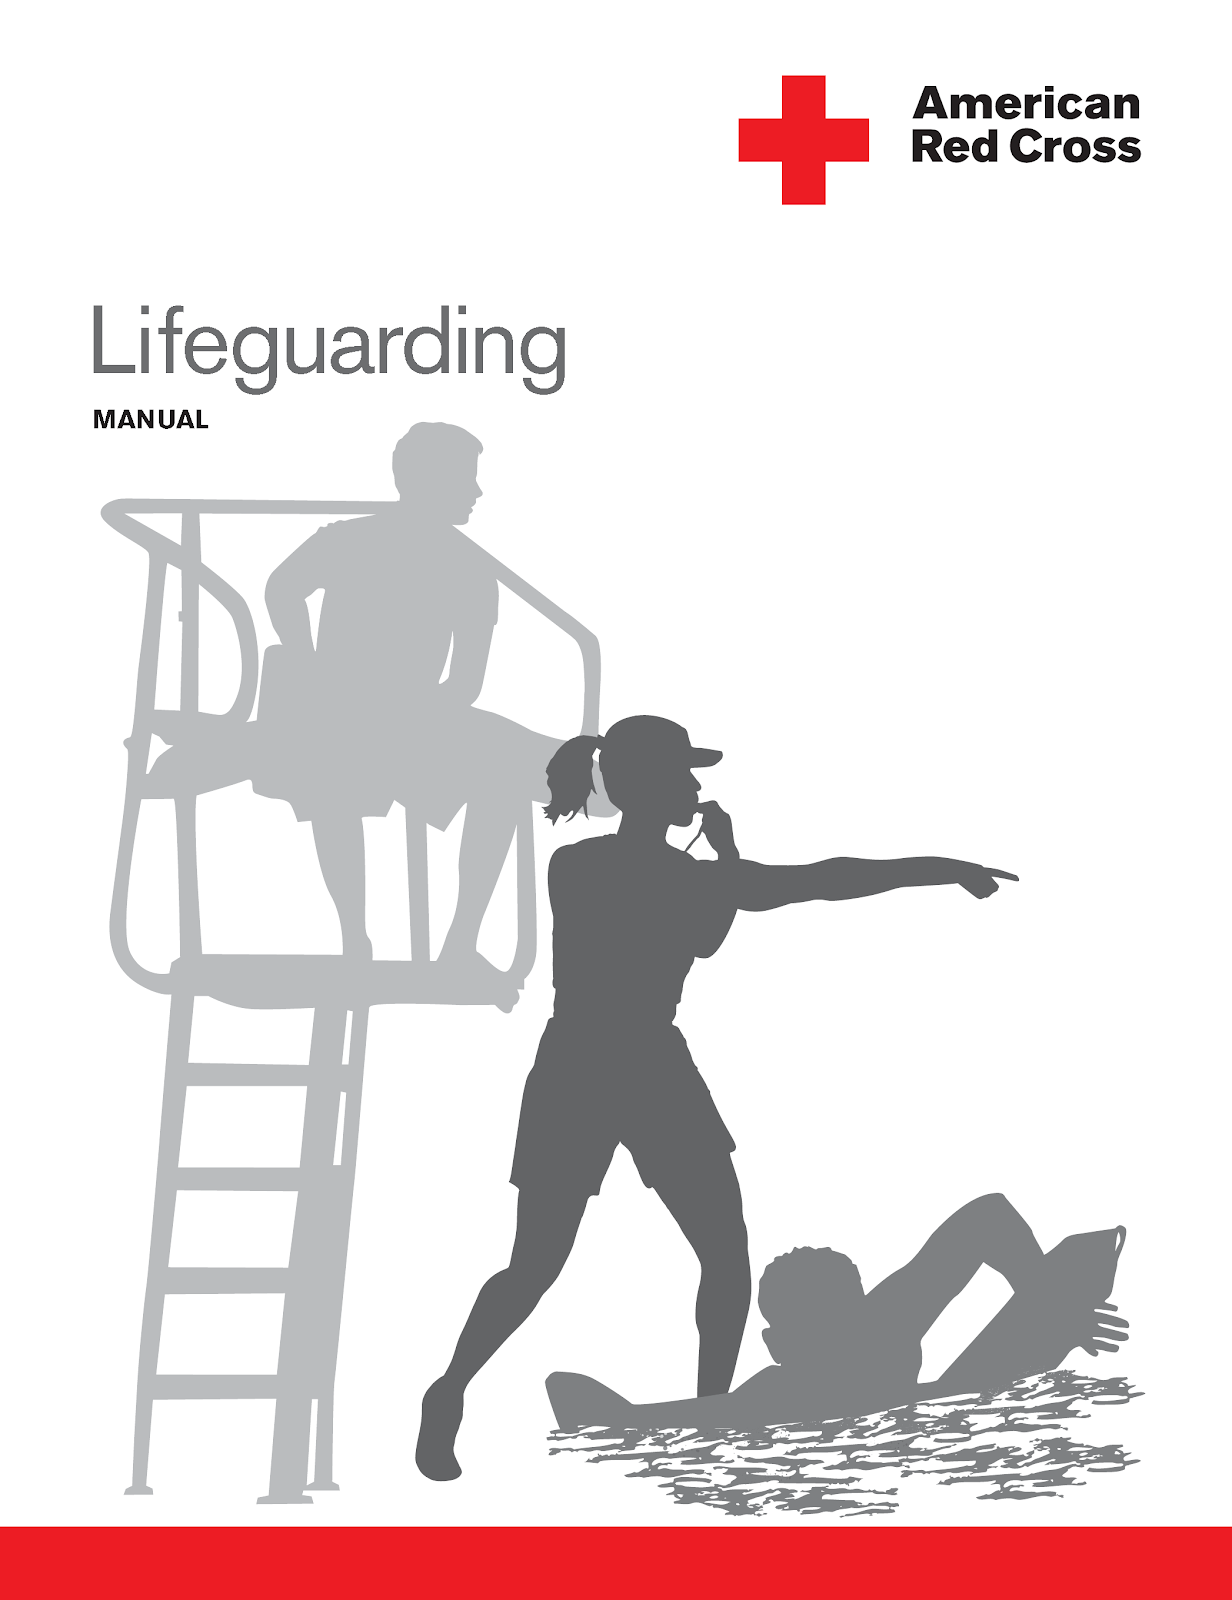 RedCross-LifeGuarding-Manual-cover.png